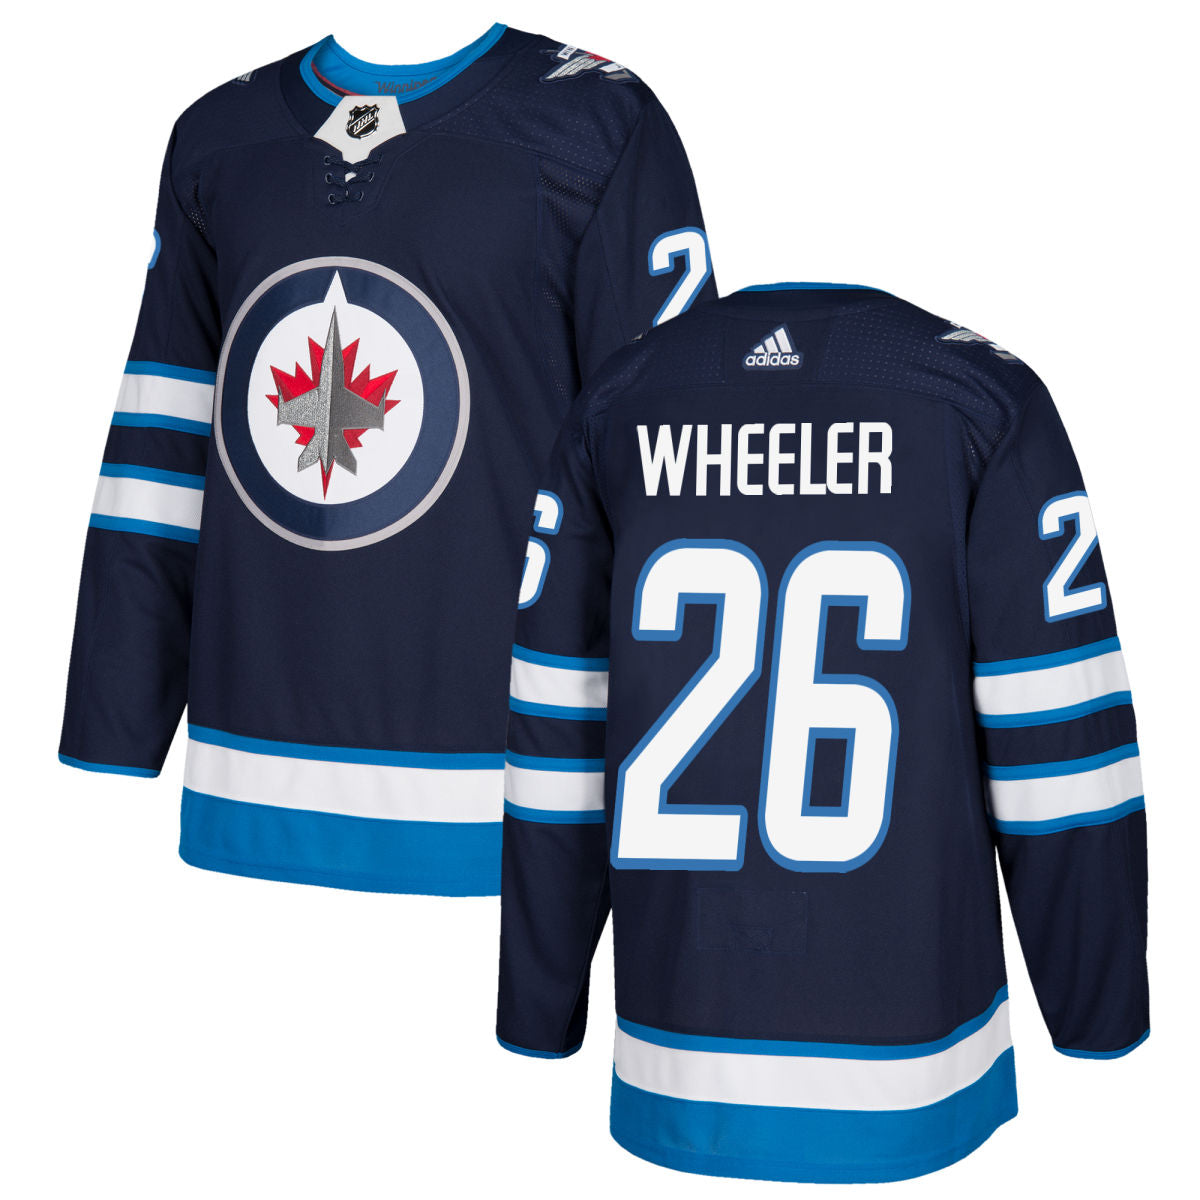 Nhl Nhl Home Home Color Jersey Jersey efacdfebdeddebef|Is He A 3 Down Lineman?